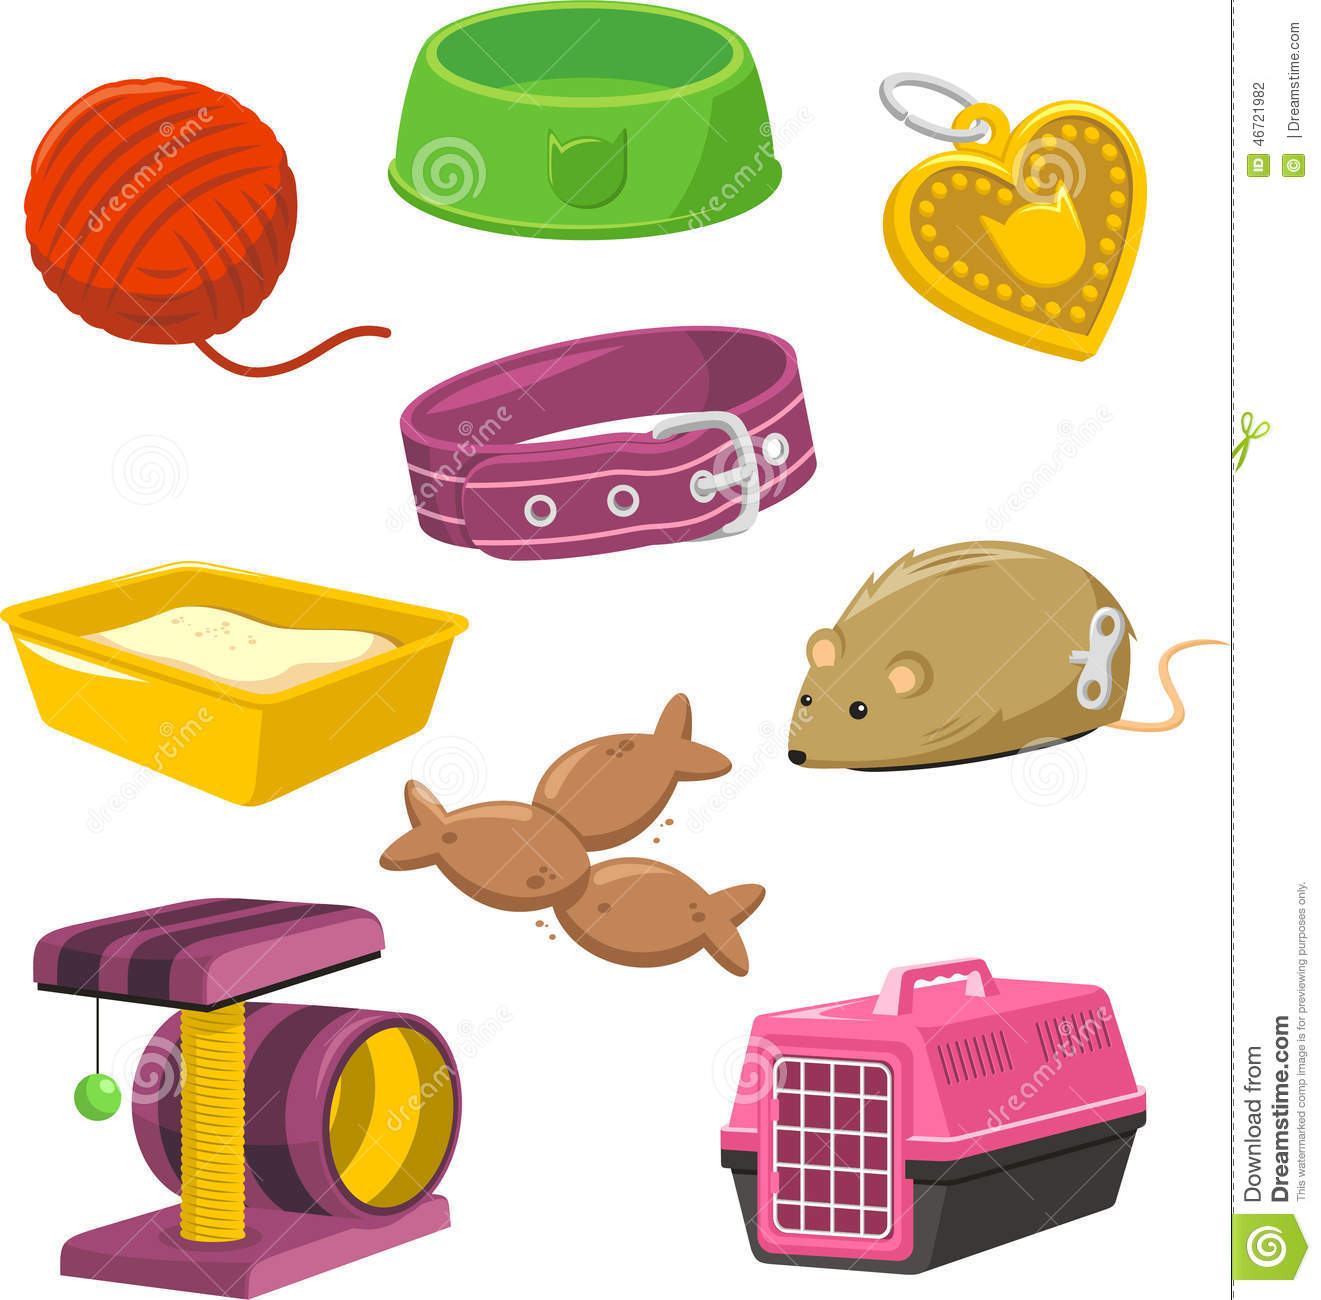 Toy Food Clip Art : Cat stuff toy set stock illustration of